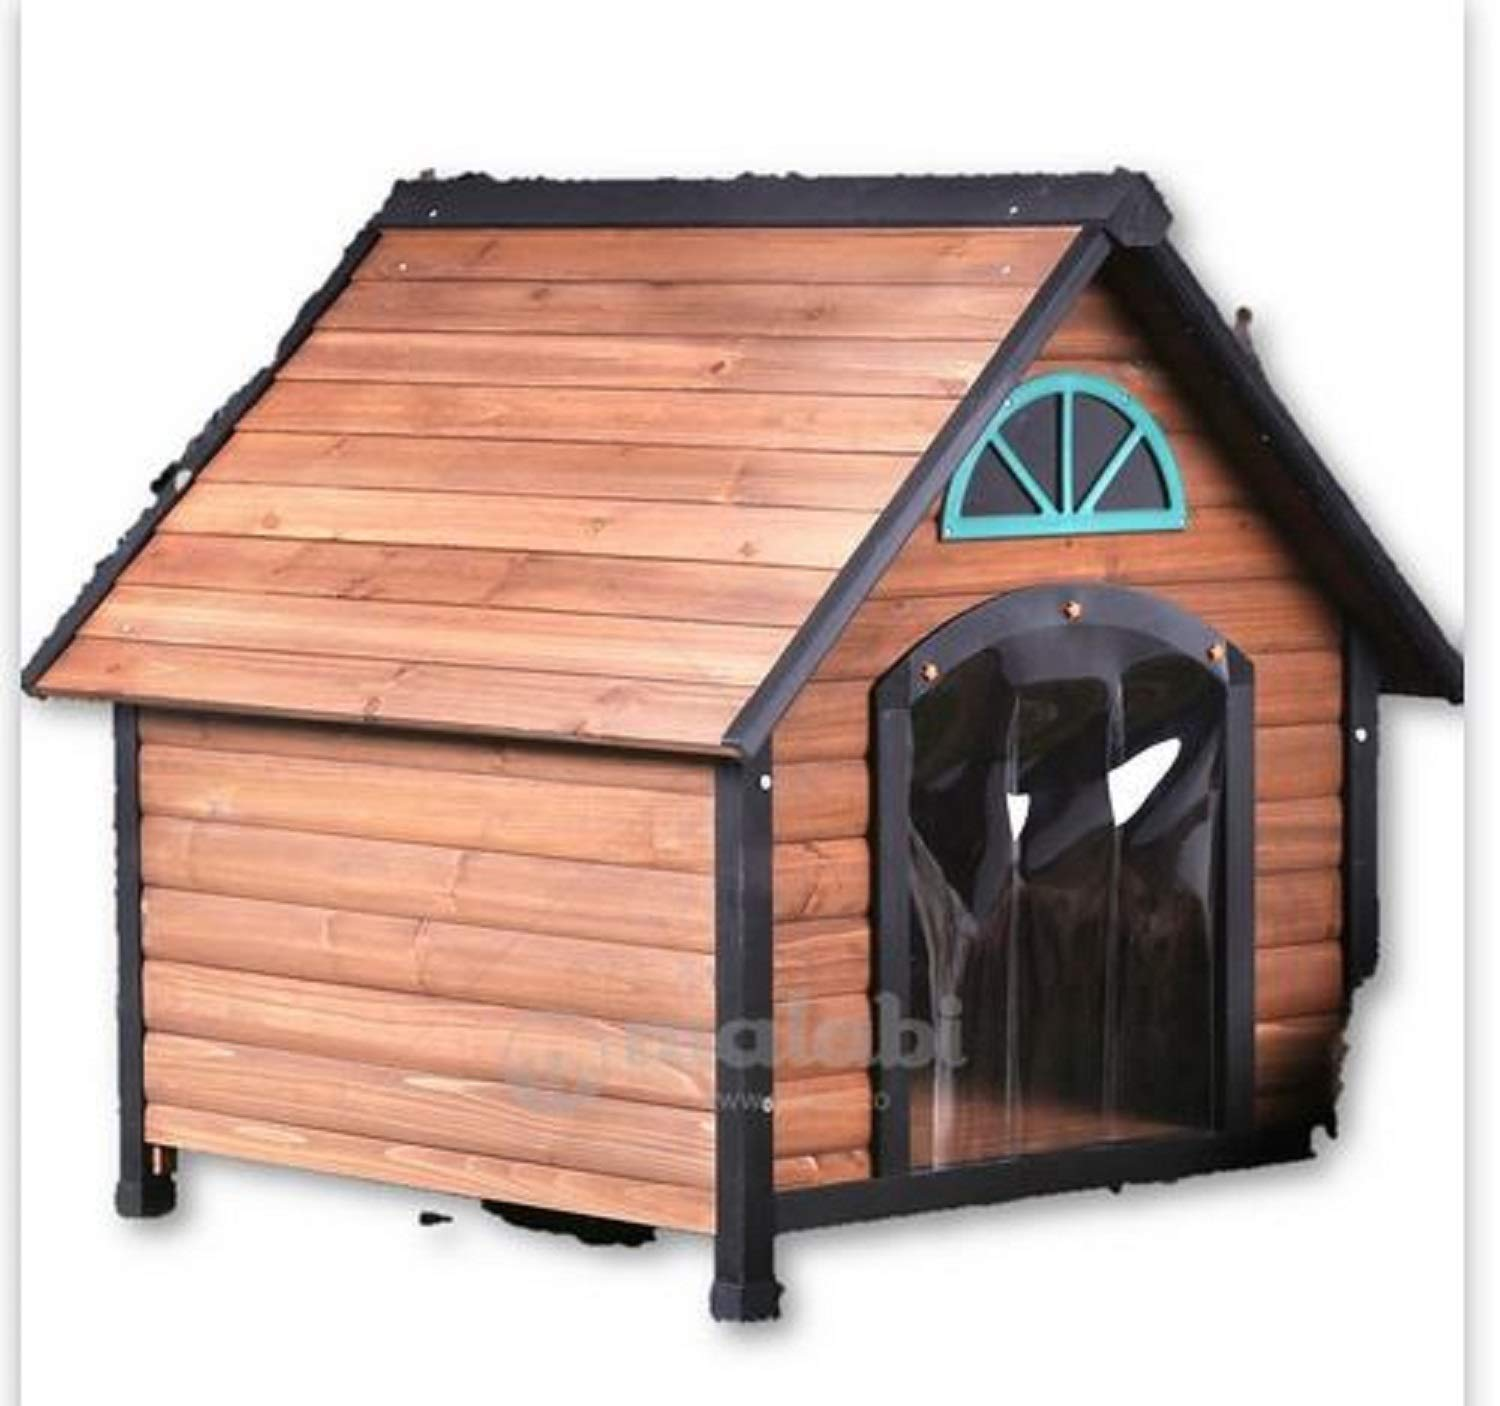 Contemporary Dog House. Oleary Contemporary Dog House Ready to Move-in Dog Pet